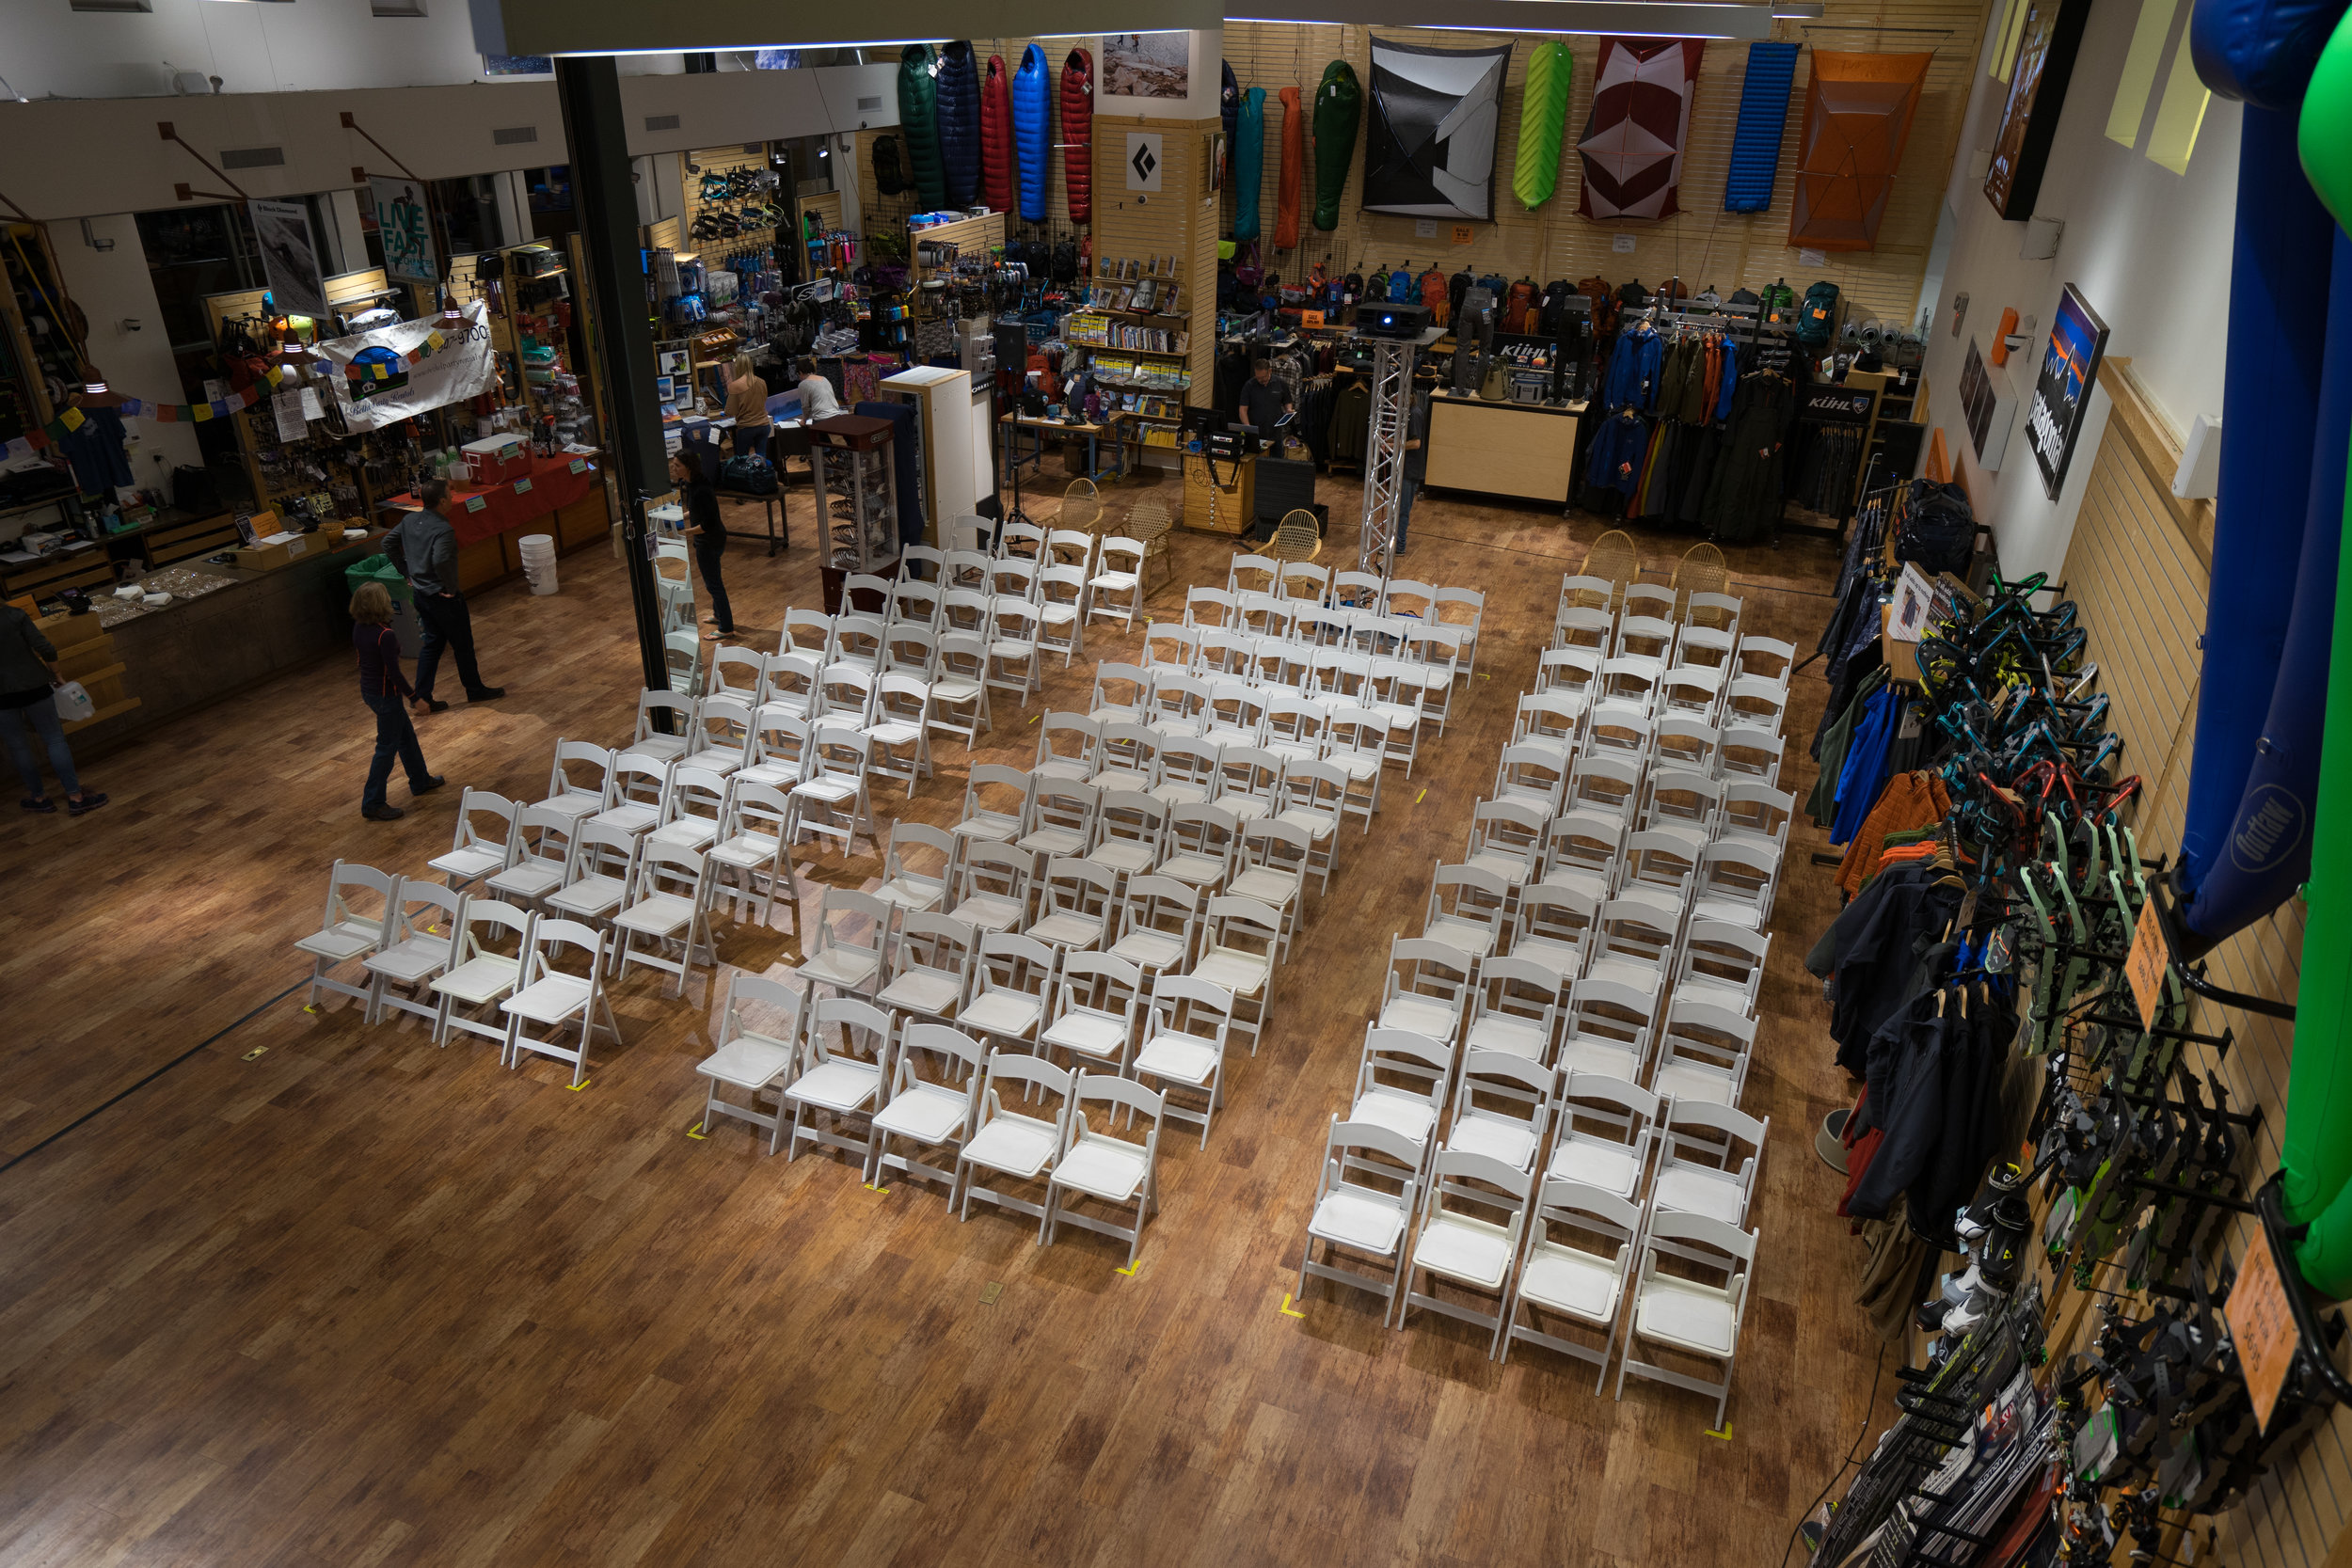 Quite the store transformation! Thank you to Bethel Party Rentals for donating the chairs for 5Point Night at Bristlecone!